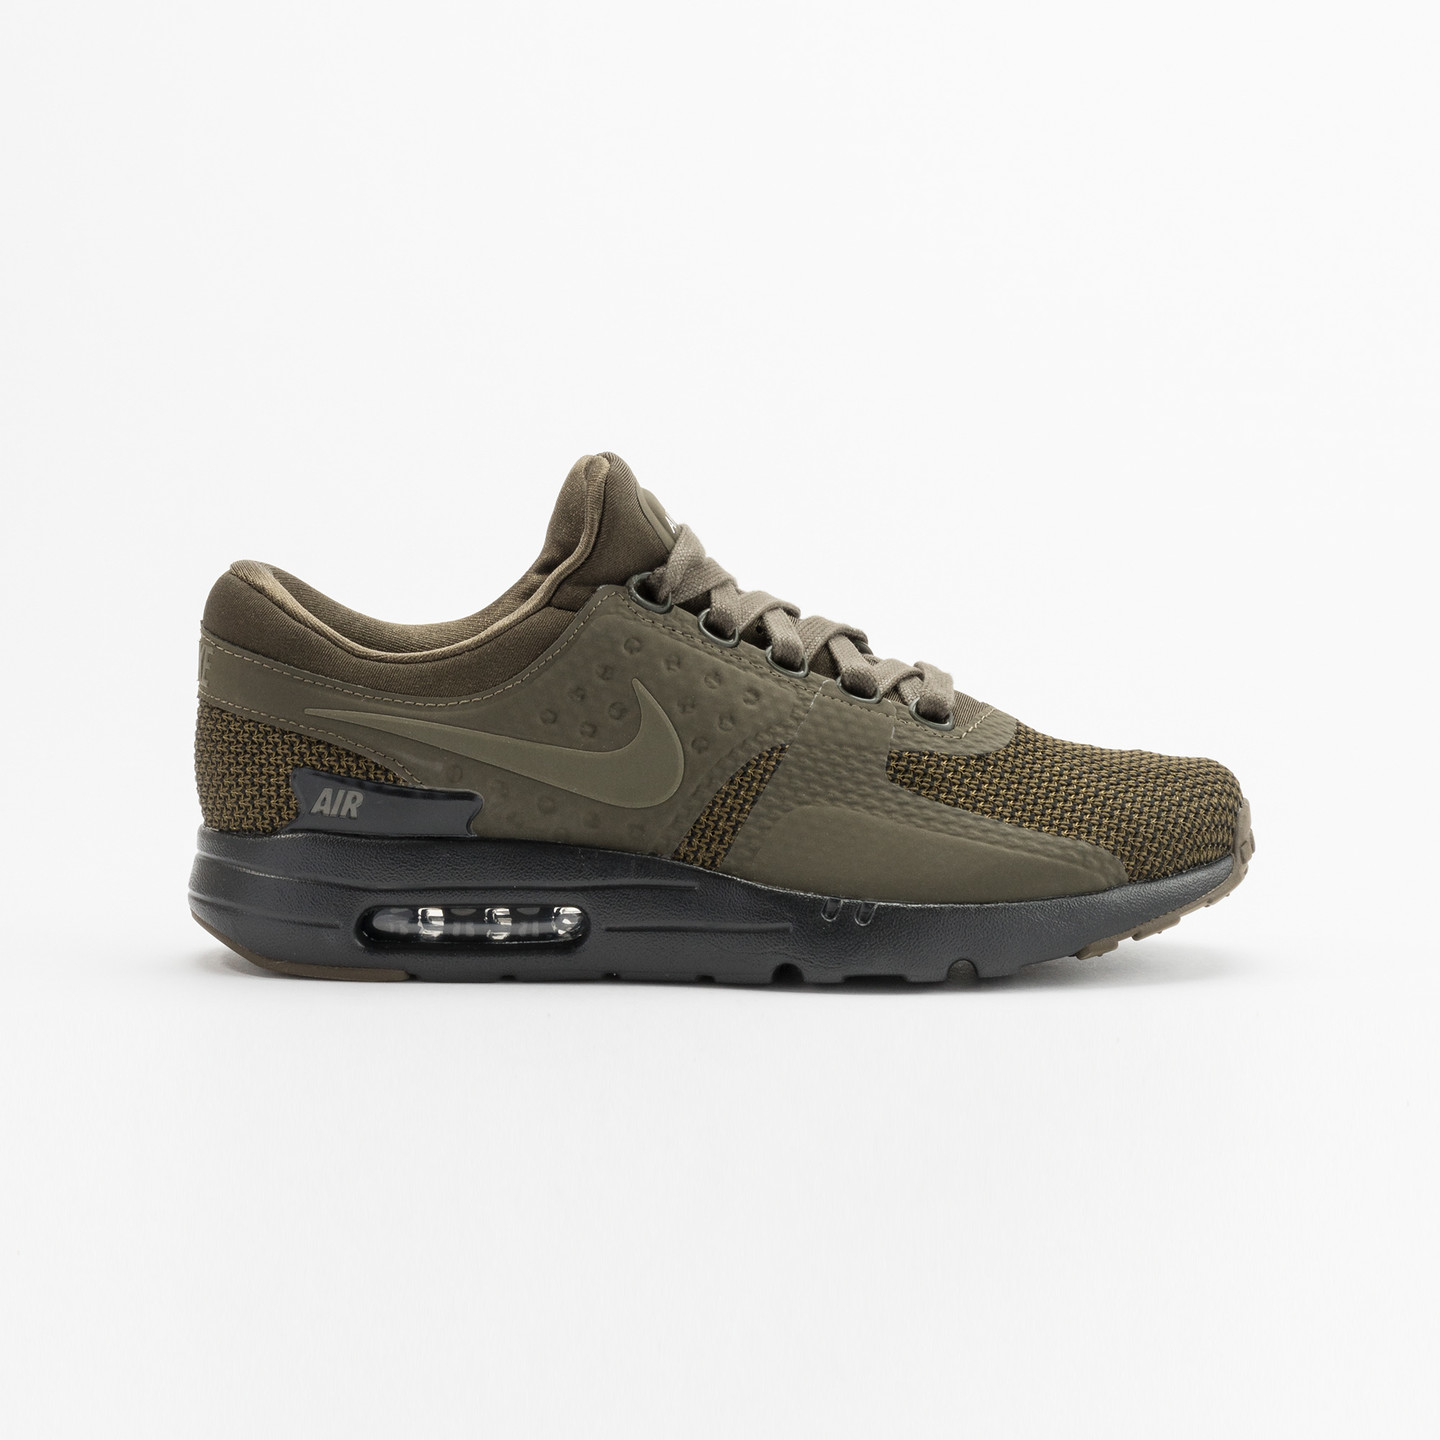 Nike Air Max Zero Premium Dark Loden / Black 881982-300